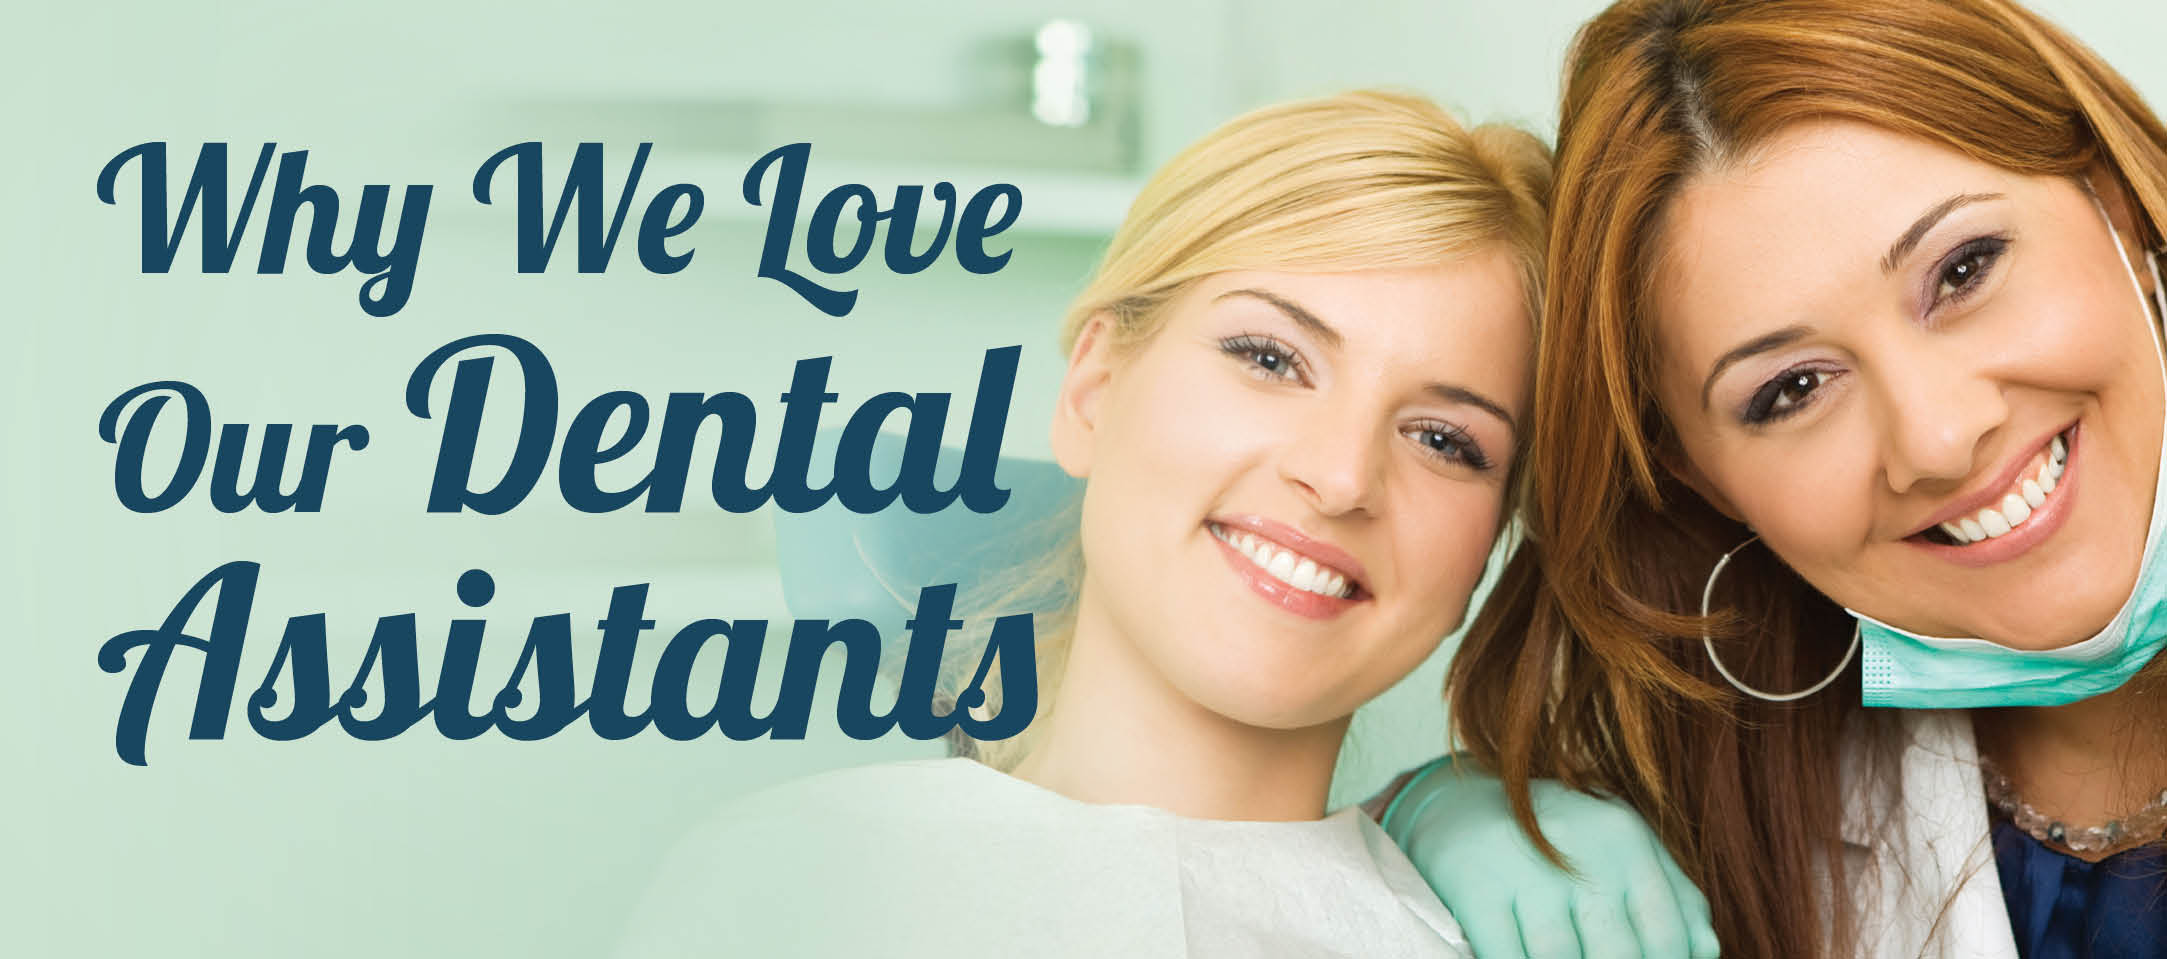 why we love our dental assistants header image